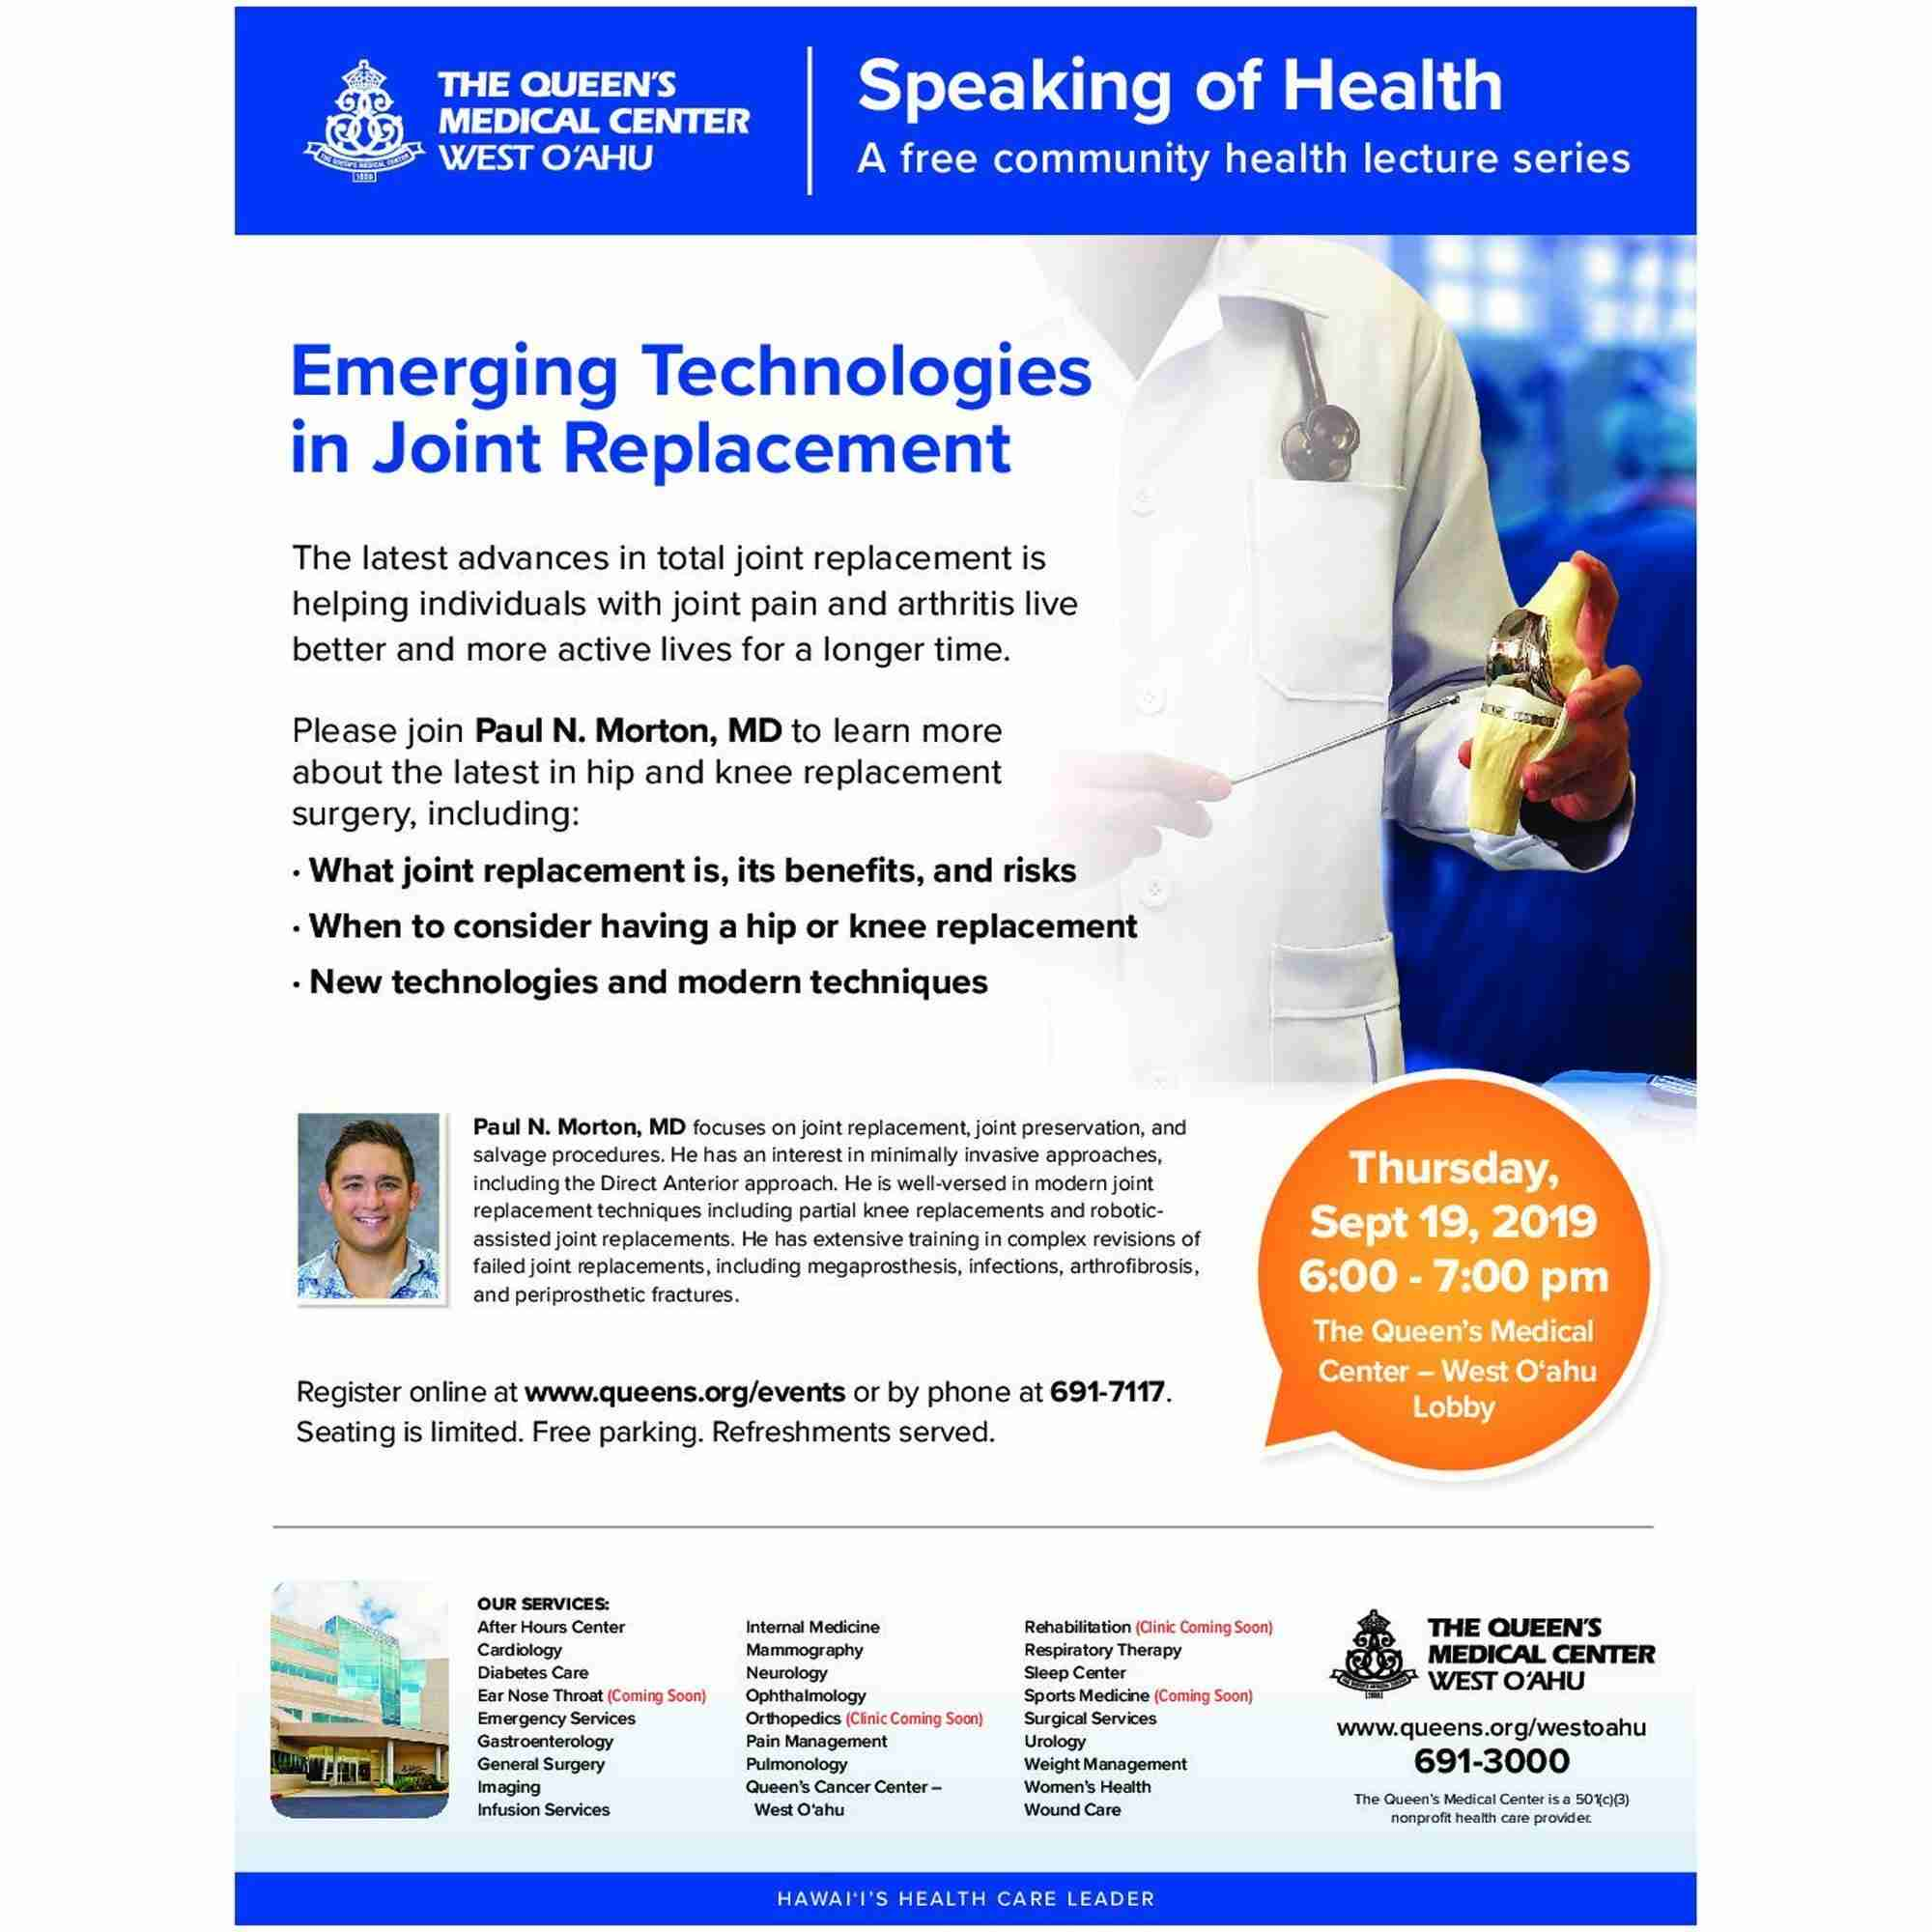 Register for Emerging Technologies in Joint Replacement Event